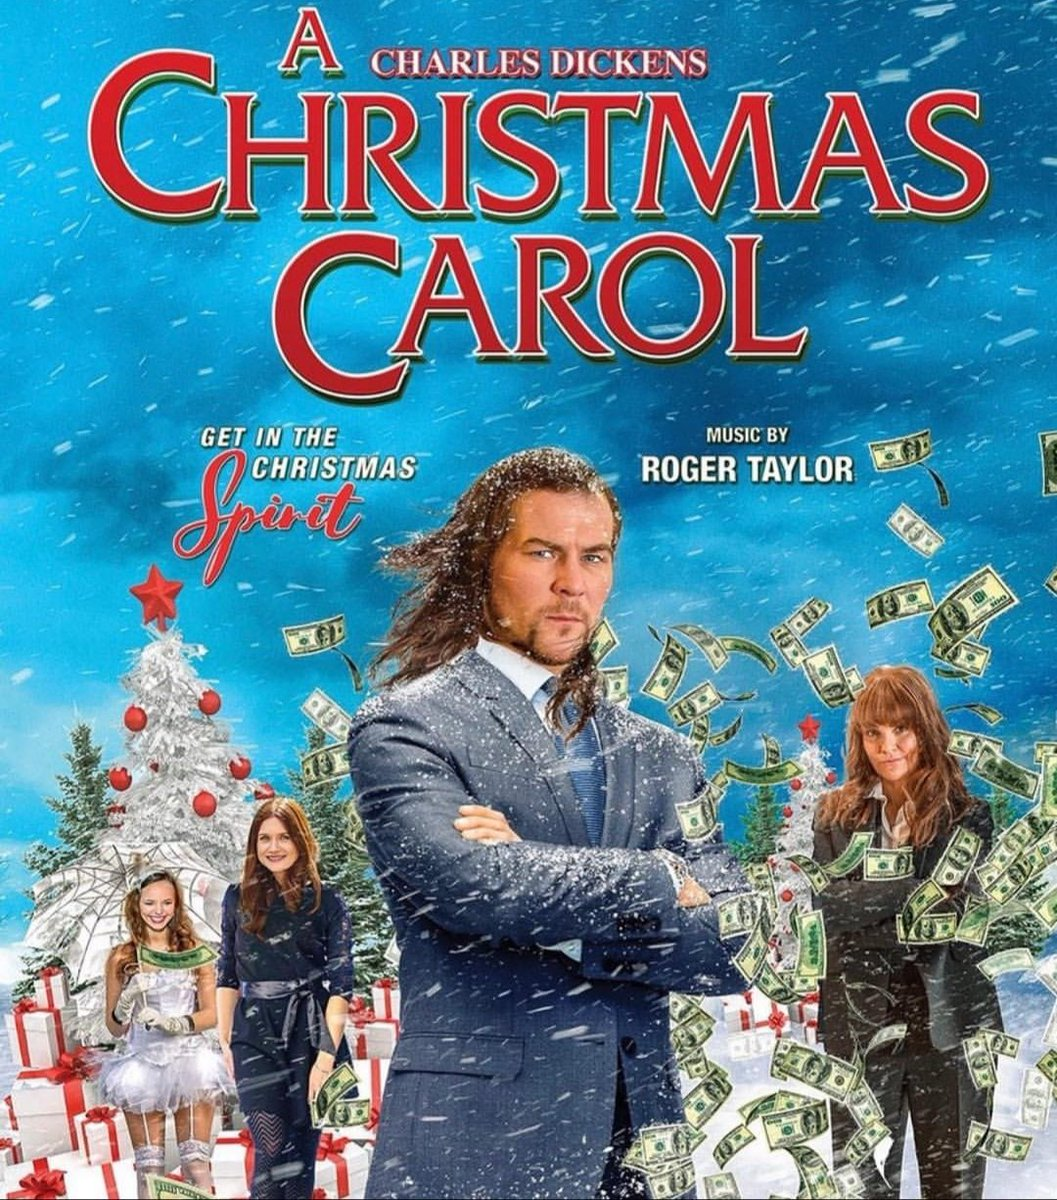 A Christmas Carol Poster.Roger Taylor On Twitter A Deceptively Jolly Poster For A